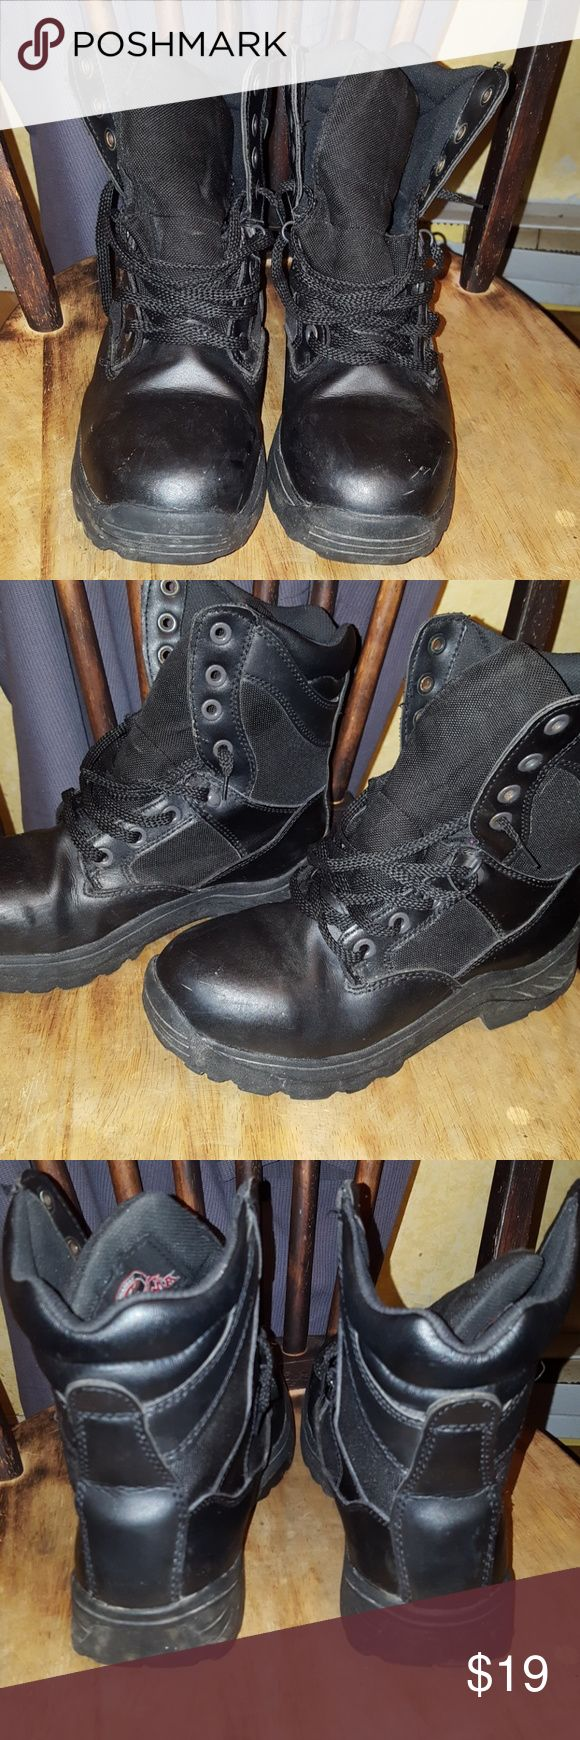 Brahma Steel Toe boots Preloved condition, but still in good shape. There a few little scuff marks on the one boot. (Seen in cover photo) the boots are still held together though. The sole isn't coming apart and there are no tears in the mesh, tongue or inside. Besides the tiny scuff mark, these boots are in great shape. Black boot polish will make these boots look  brand new!  Slip resistant and oil resistant.   Size 8.  I wear a size 10 in women tennis shoes and these boots fit me…